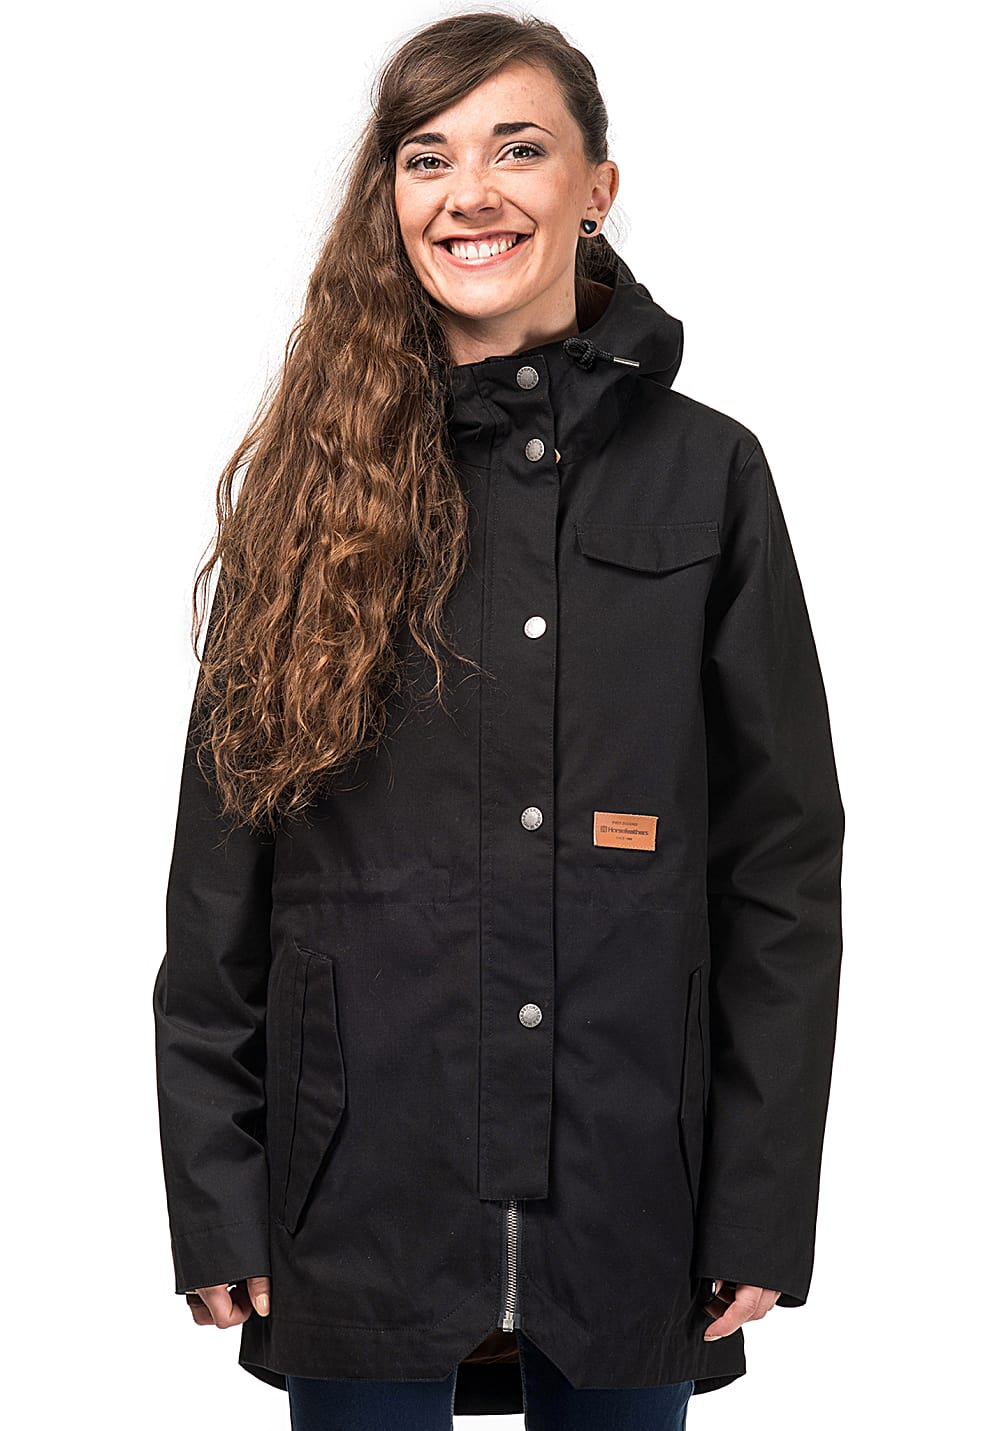 WearColour Range Jacke für Damen Schwarz Planet Sports